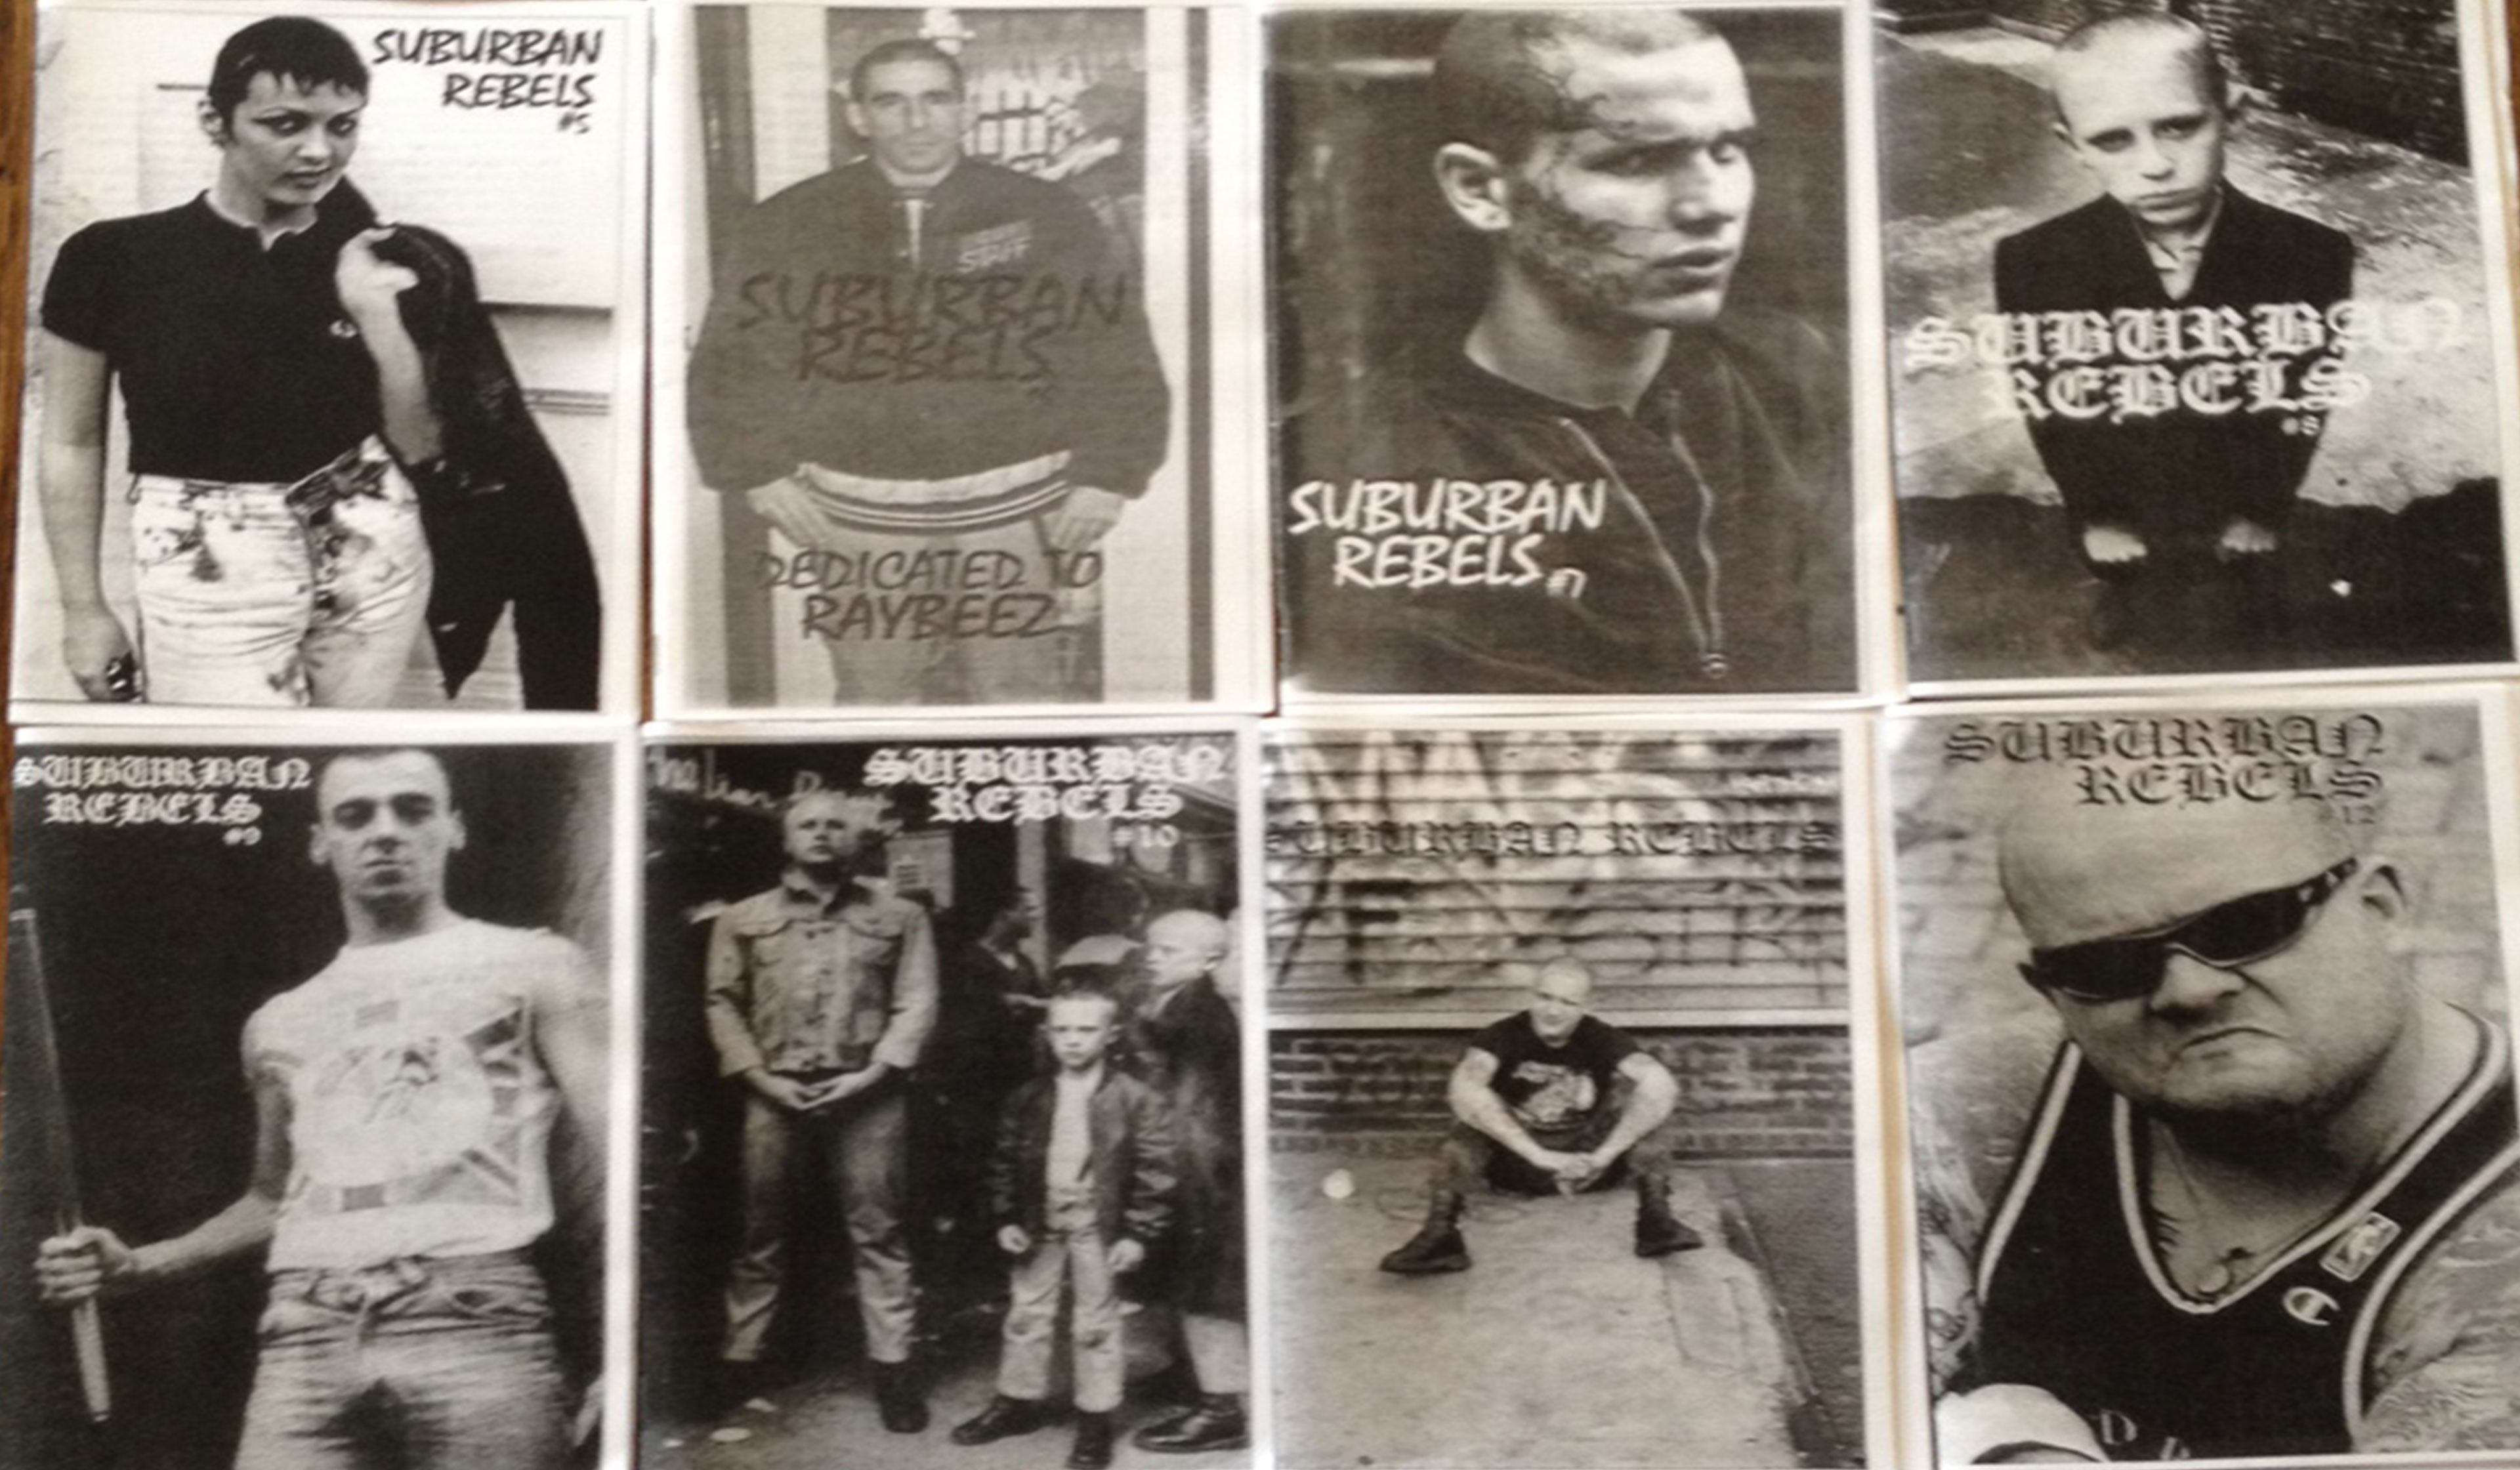 Why do not they catch skinheads because they are criminals 16